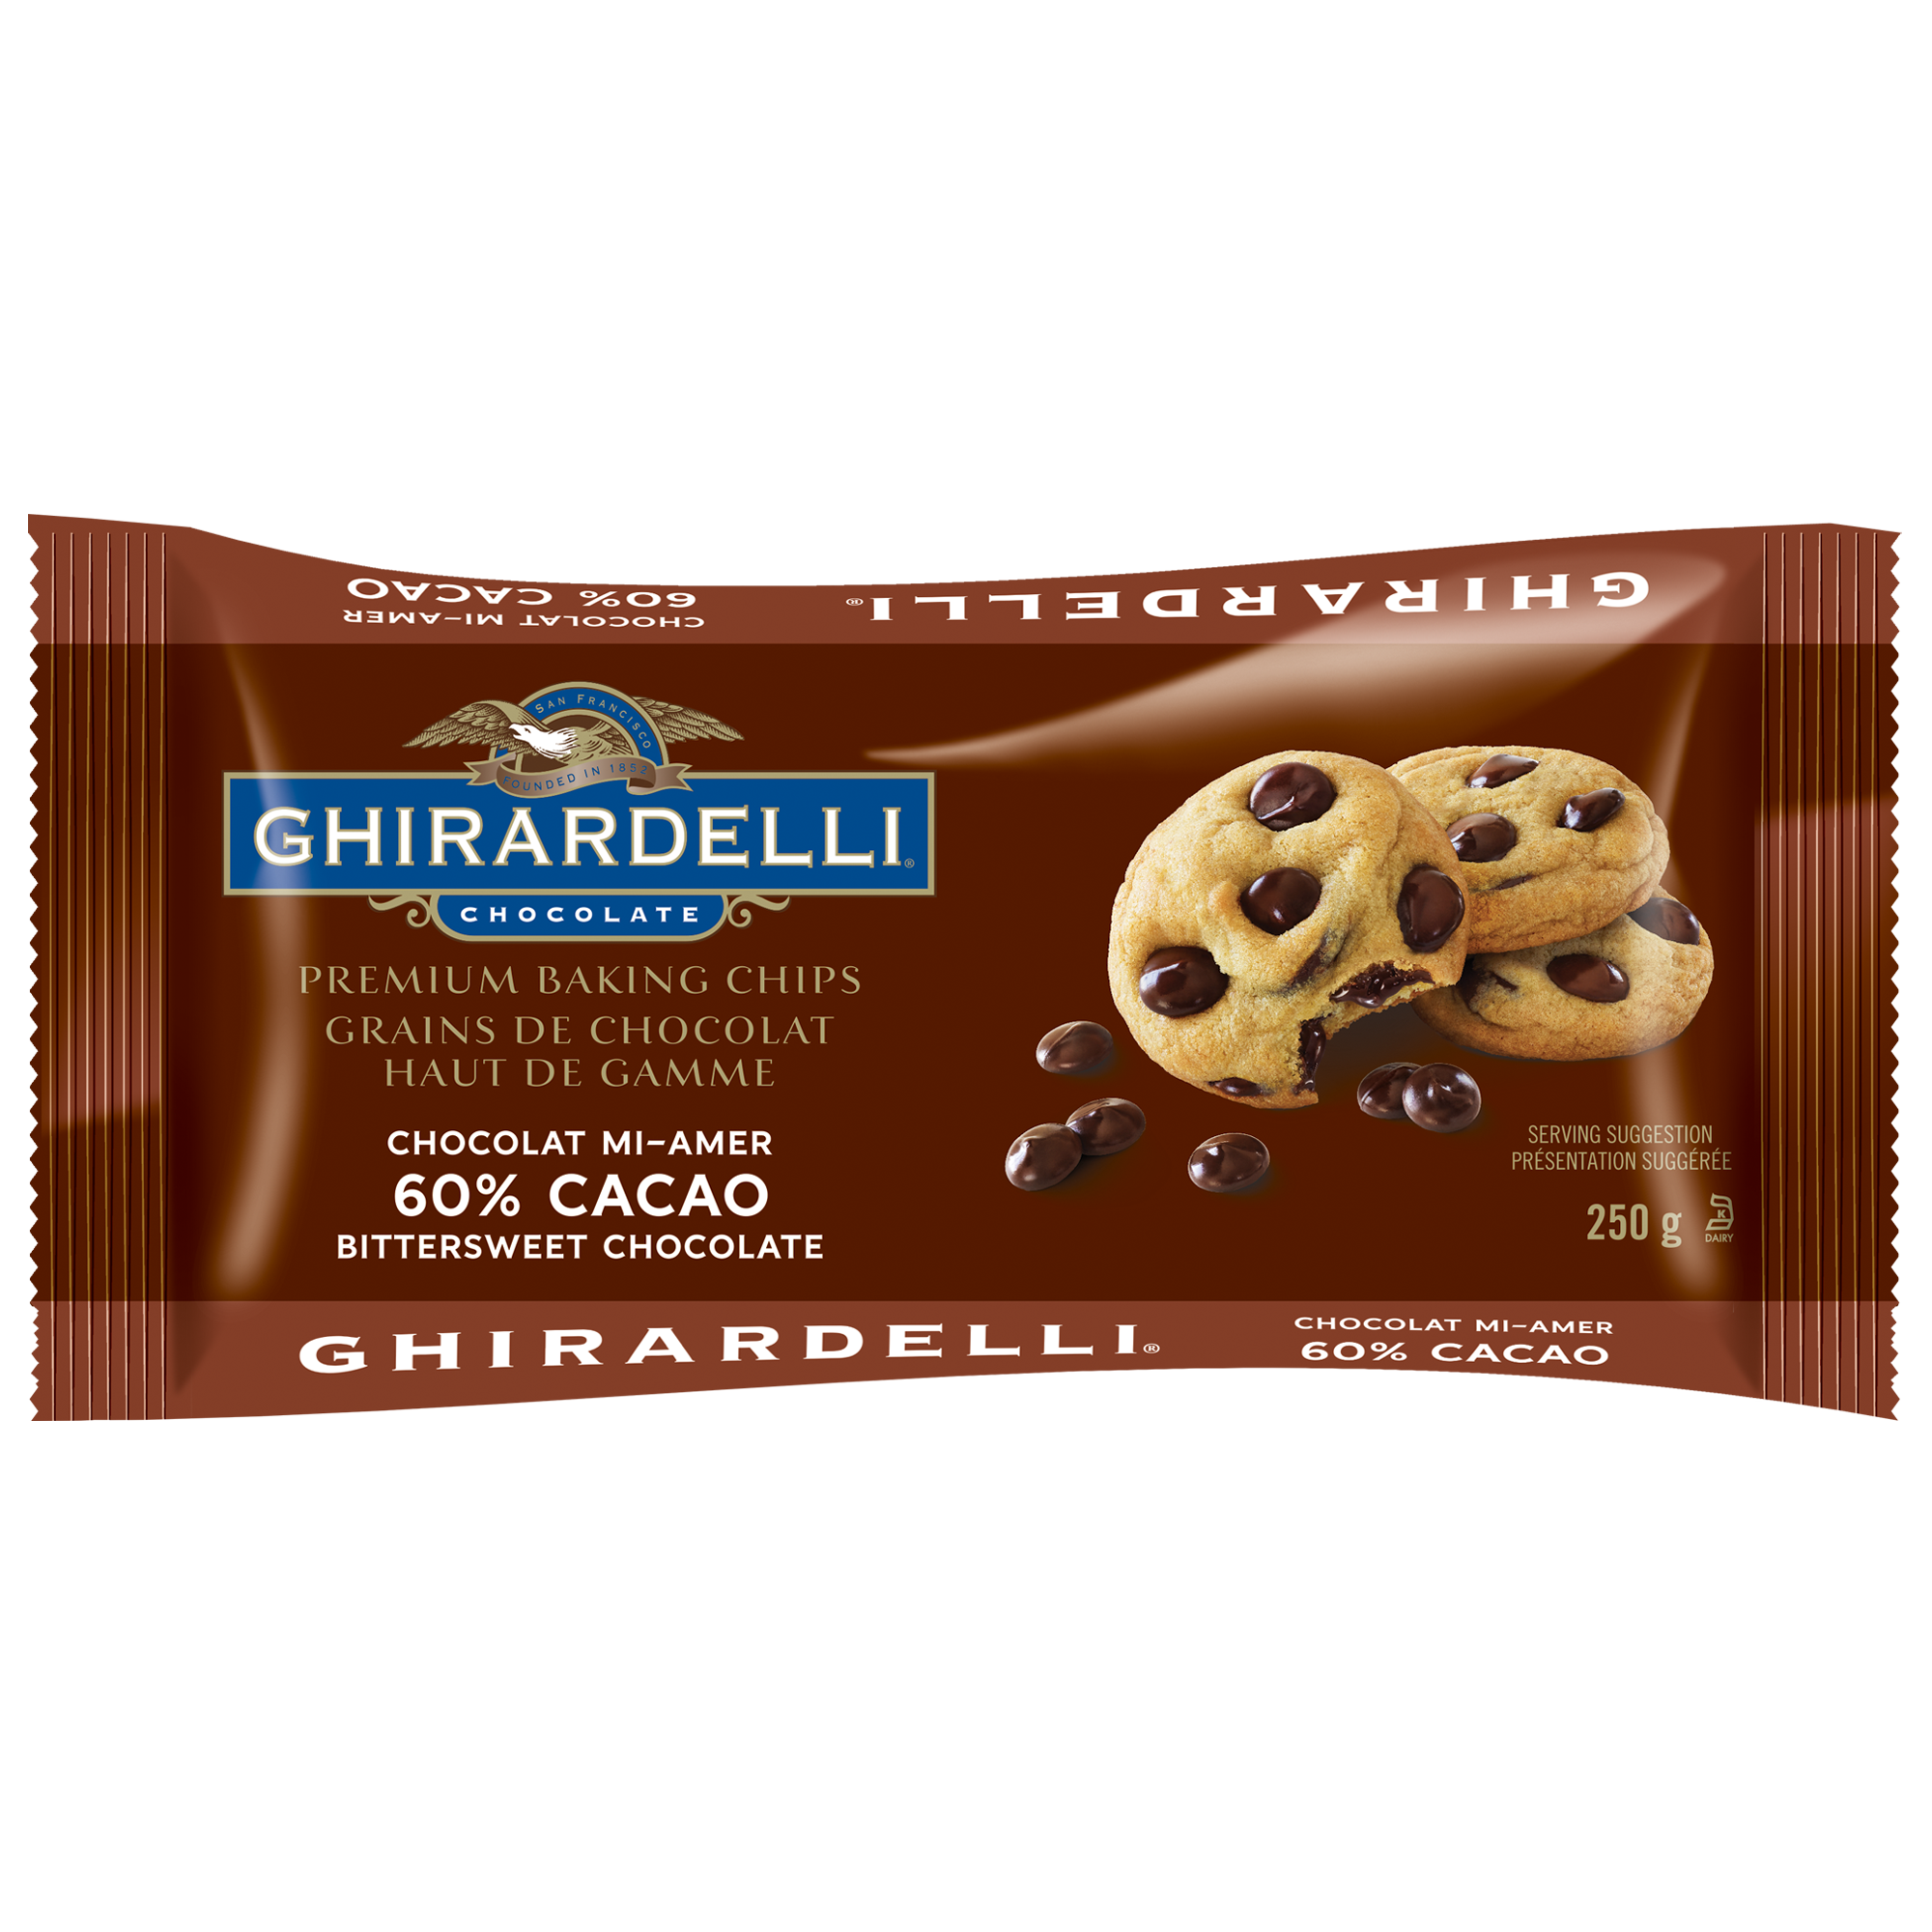 GHIRARDELLI 60% Cacao Bittersweet Chocolate Baking Chips Bag 250g